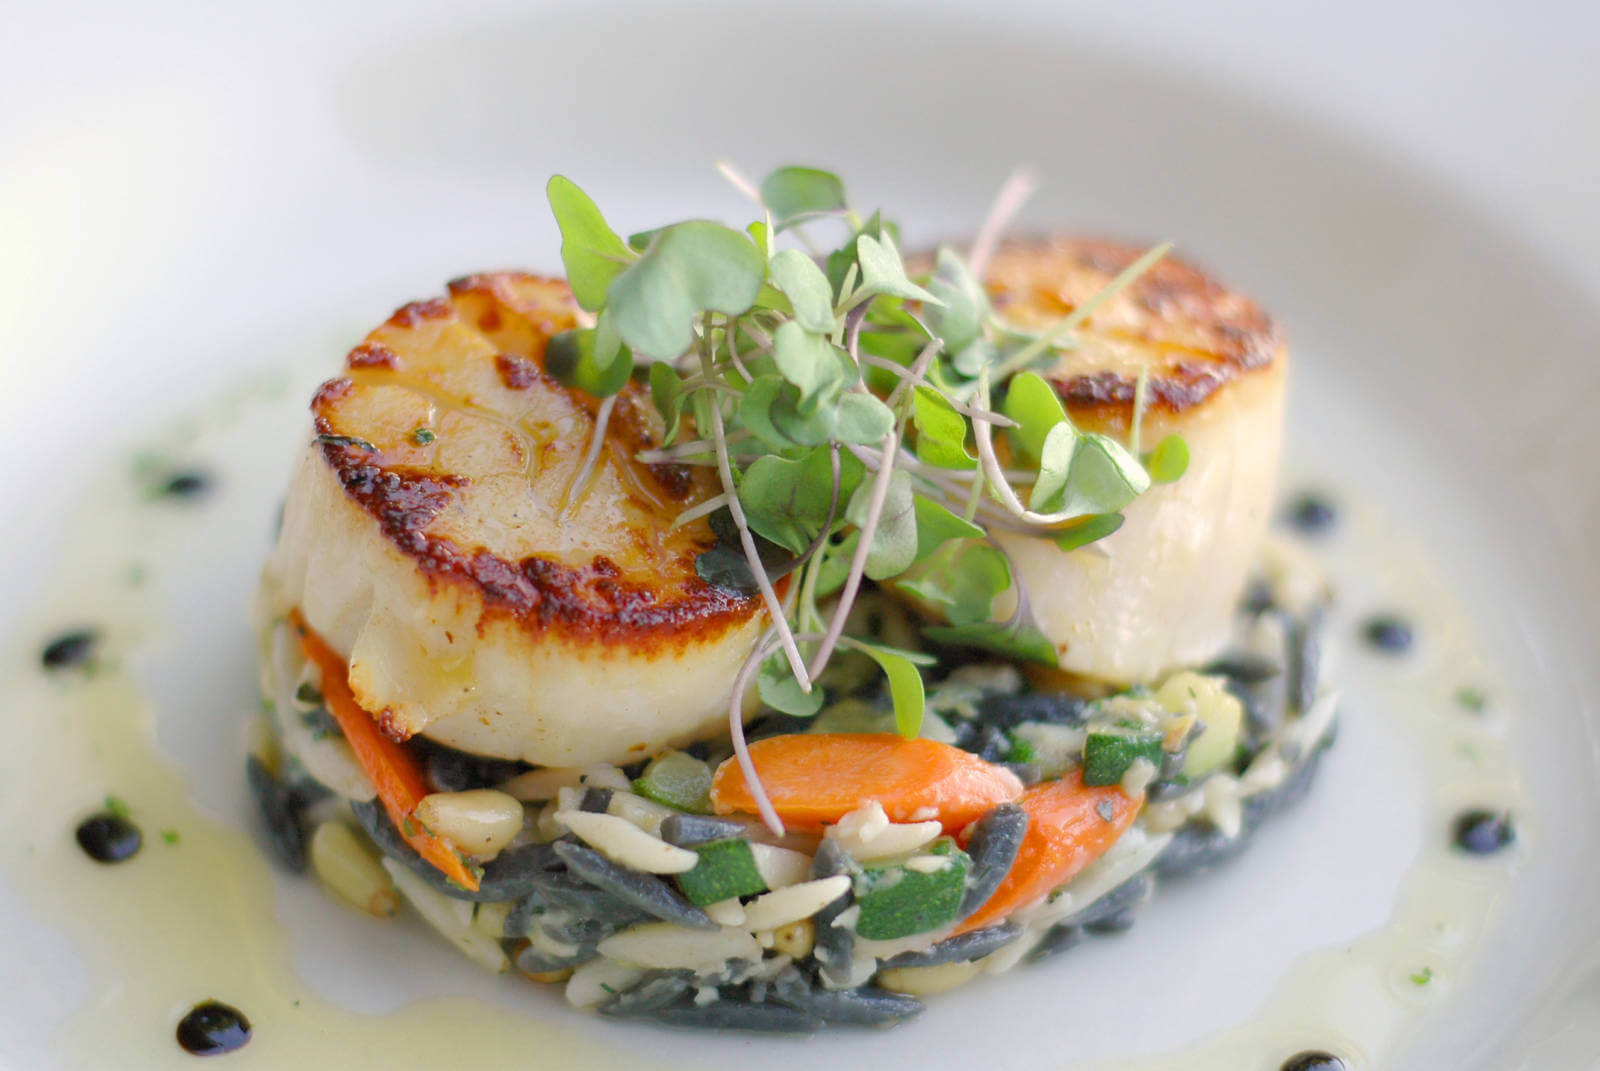 Seared Diver Scallops with Orzo. Enjoy the award-winning dinner menu, fine wines, Sunday Brunch, celebrate a wedding or anniversary overlooking Little Sarasota Bay at Ophelia's on the Bay in Siesta Key, Florida. | Must Do Visitor Guides